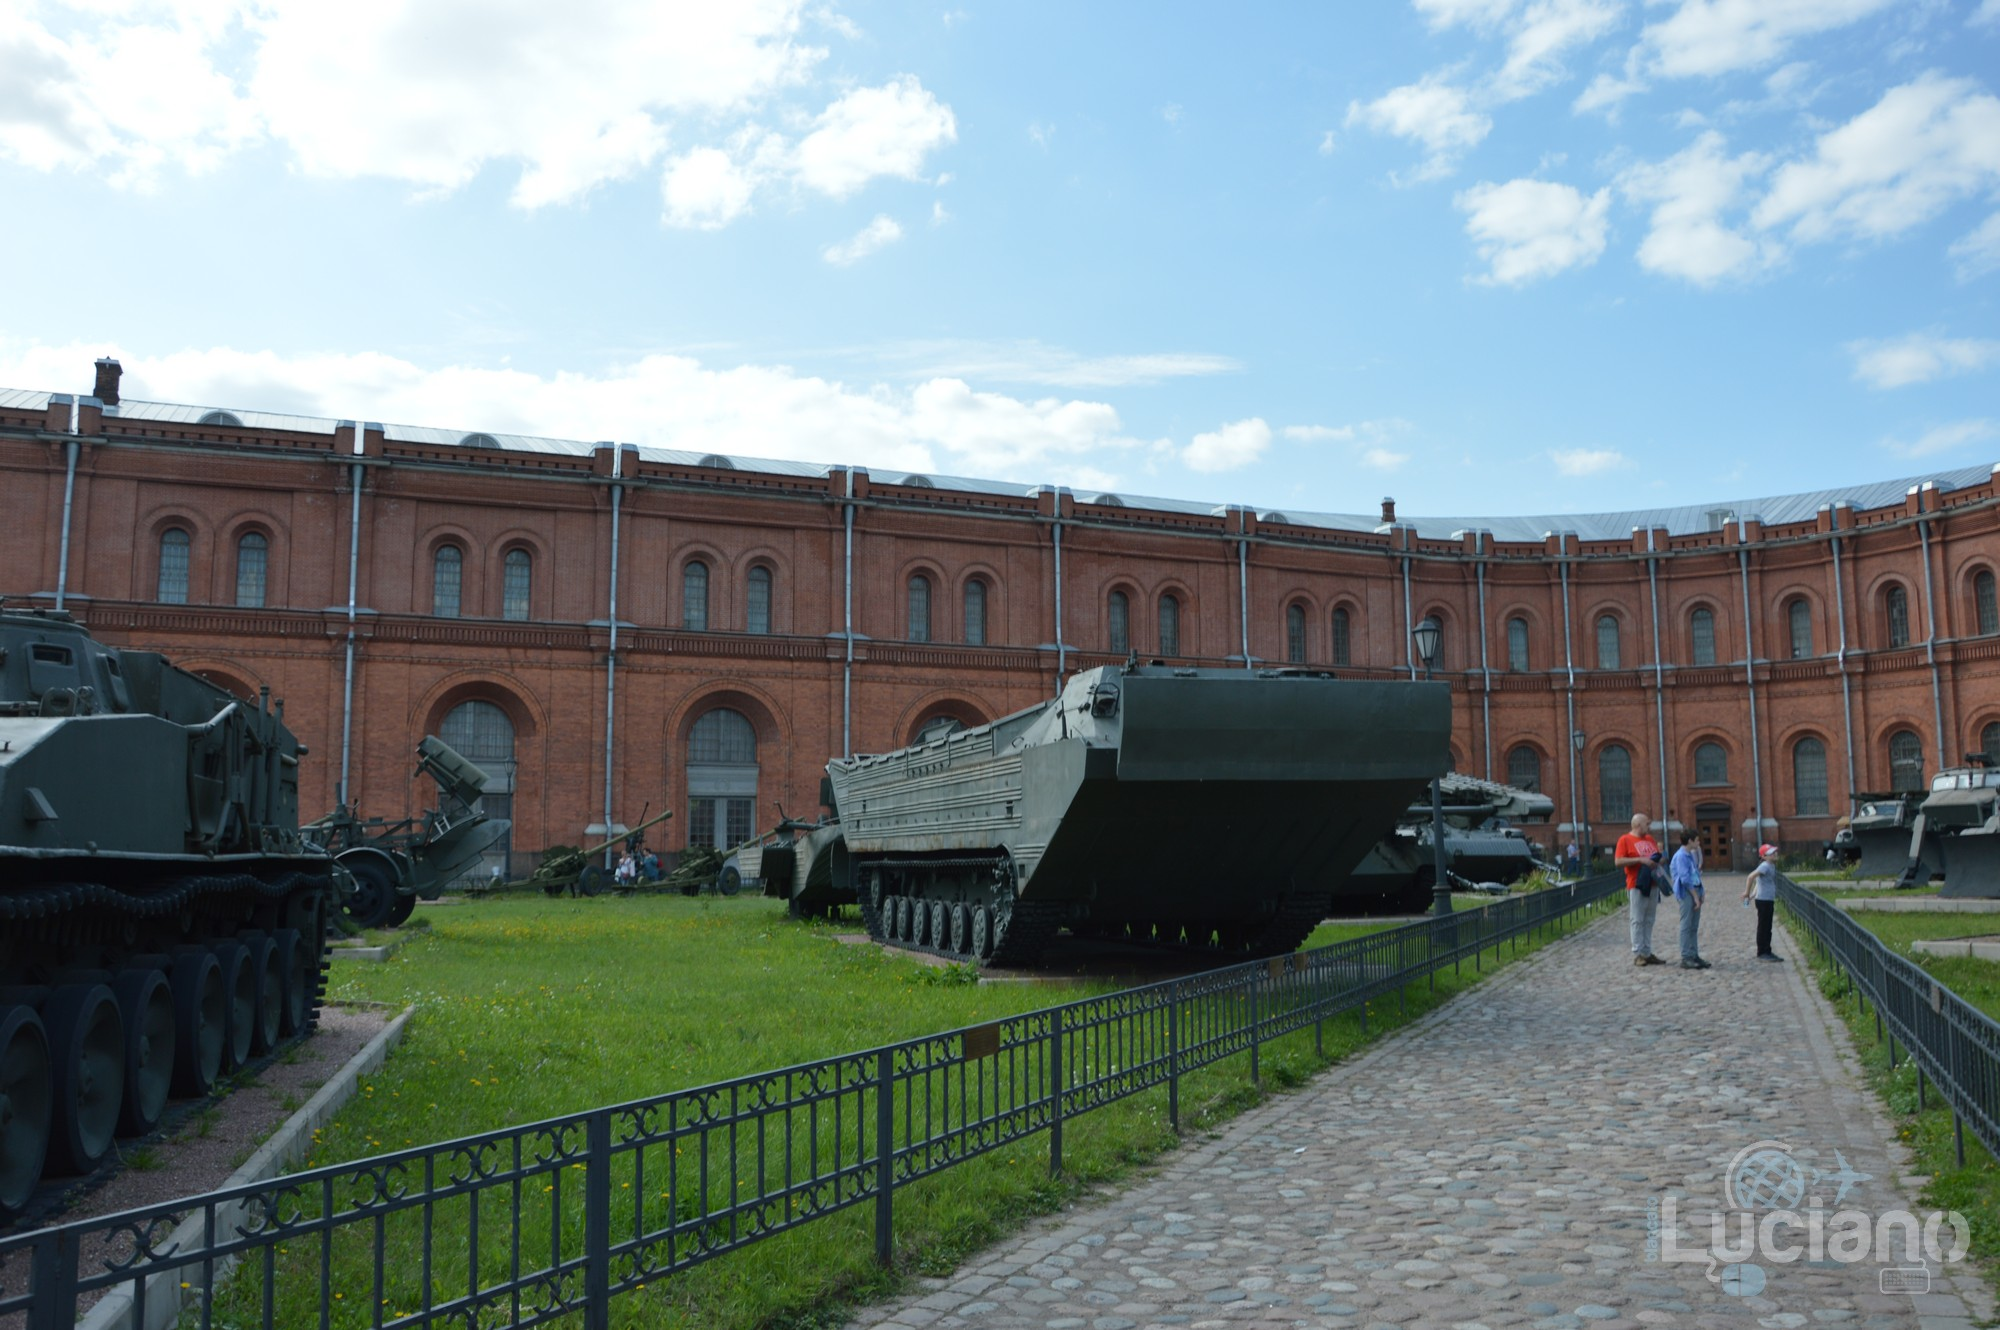 Military-Historical-Museum-of-Artillery-Engineer-and-Signal-Corps-St-Petersburg-Russia-Luciano-Blancato- (77)